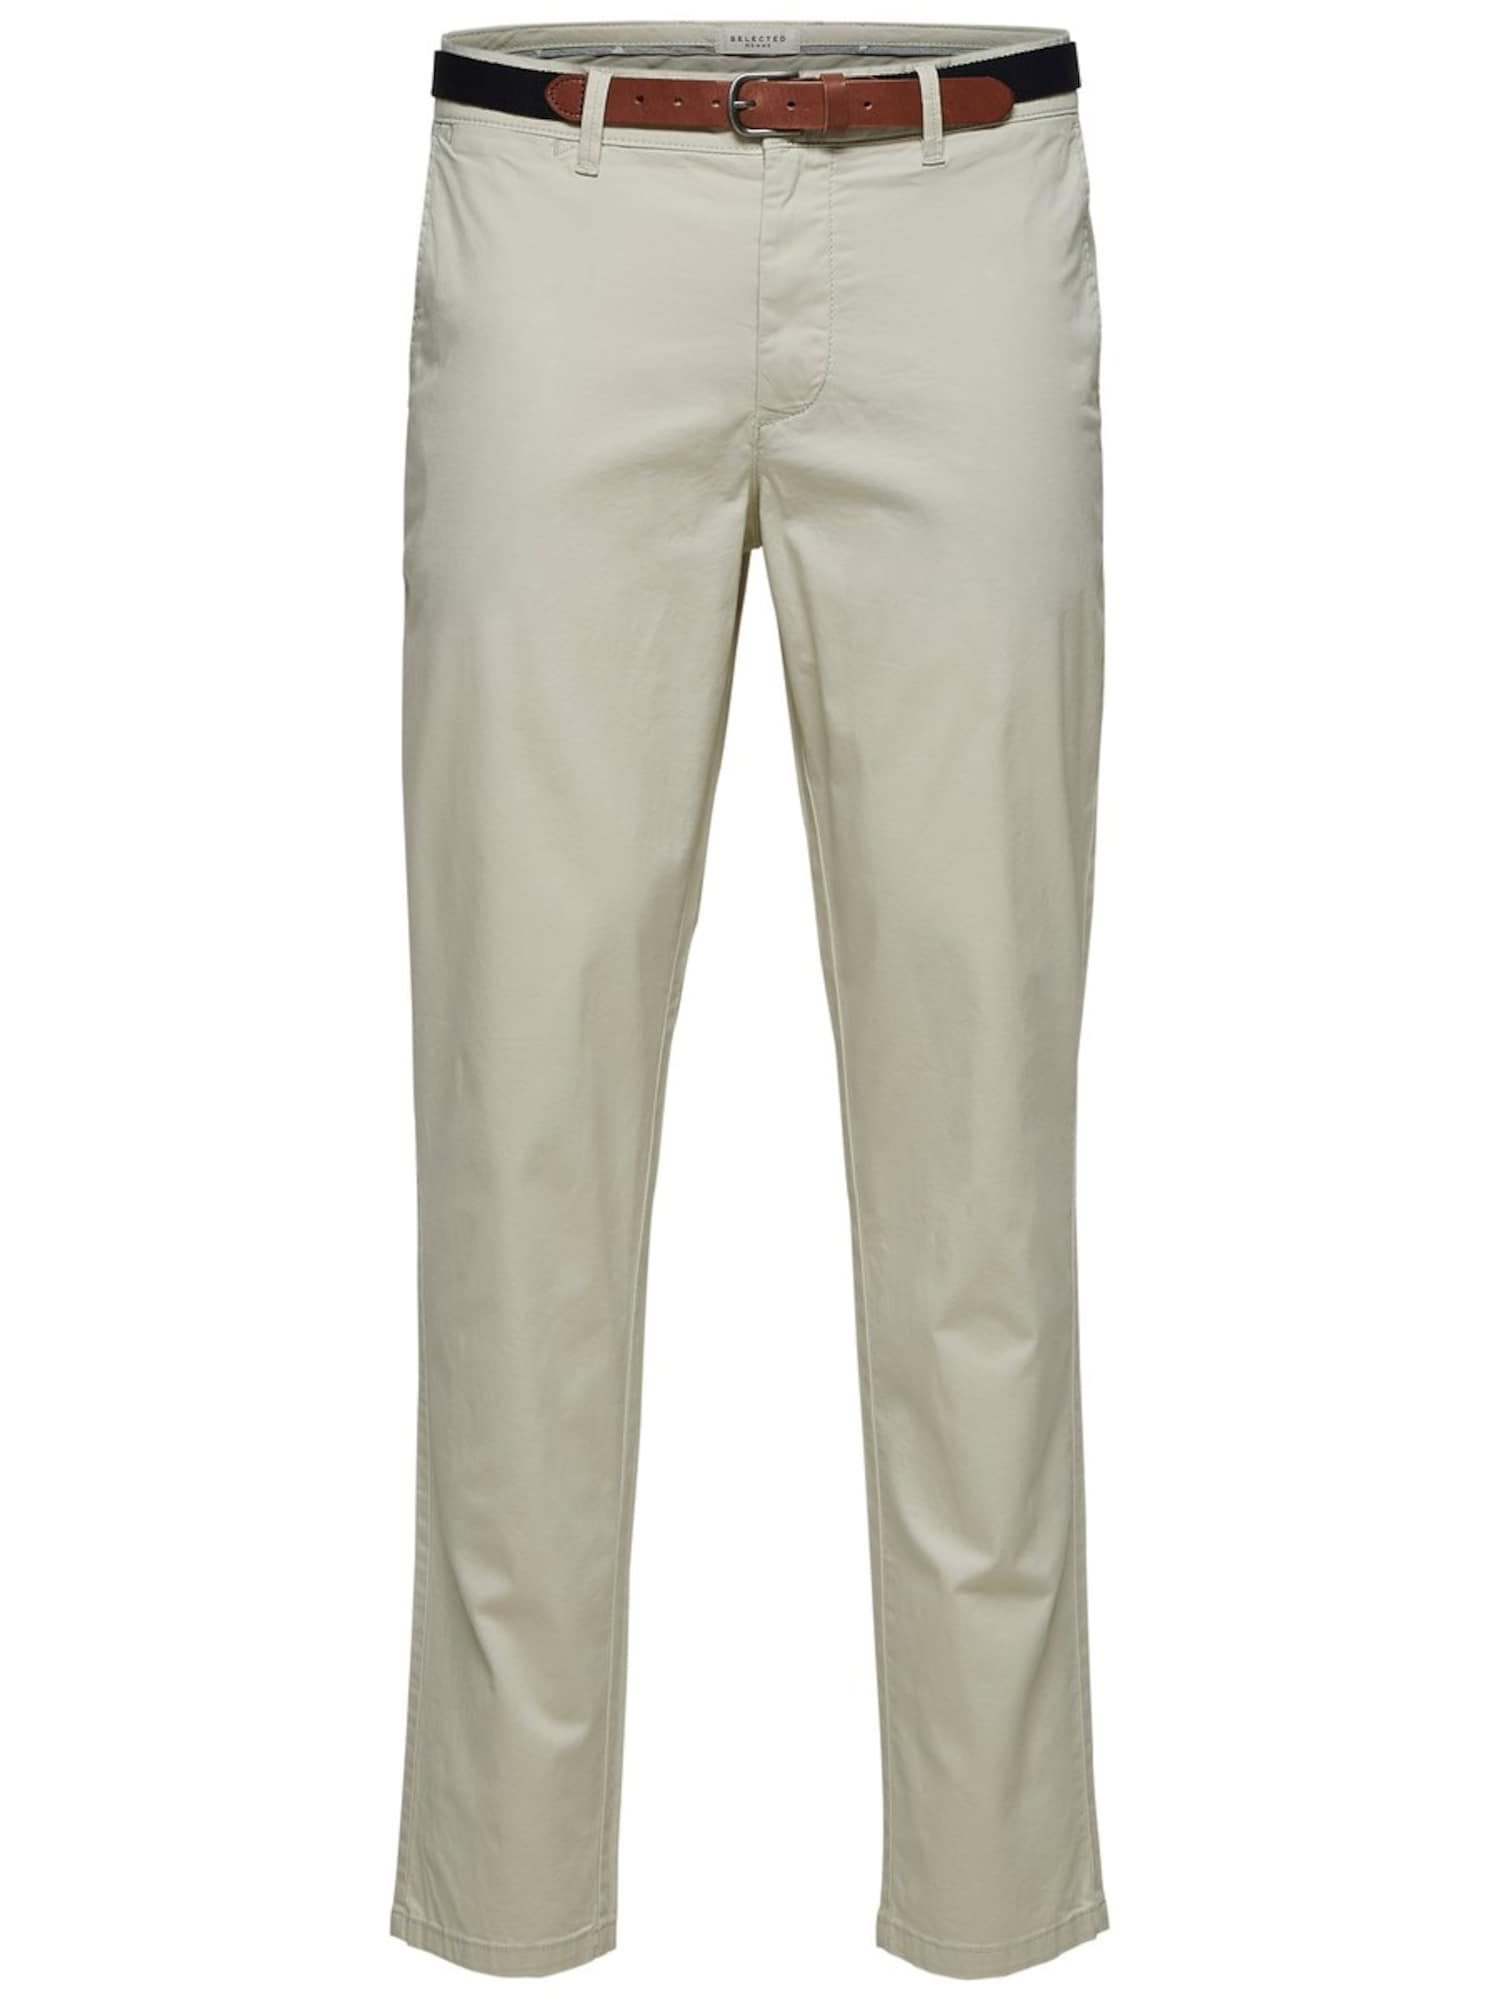 SELECTED HOMME Chino stiliaus kelnės balta